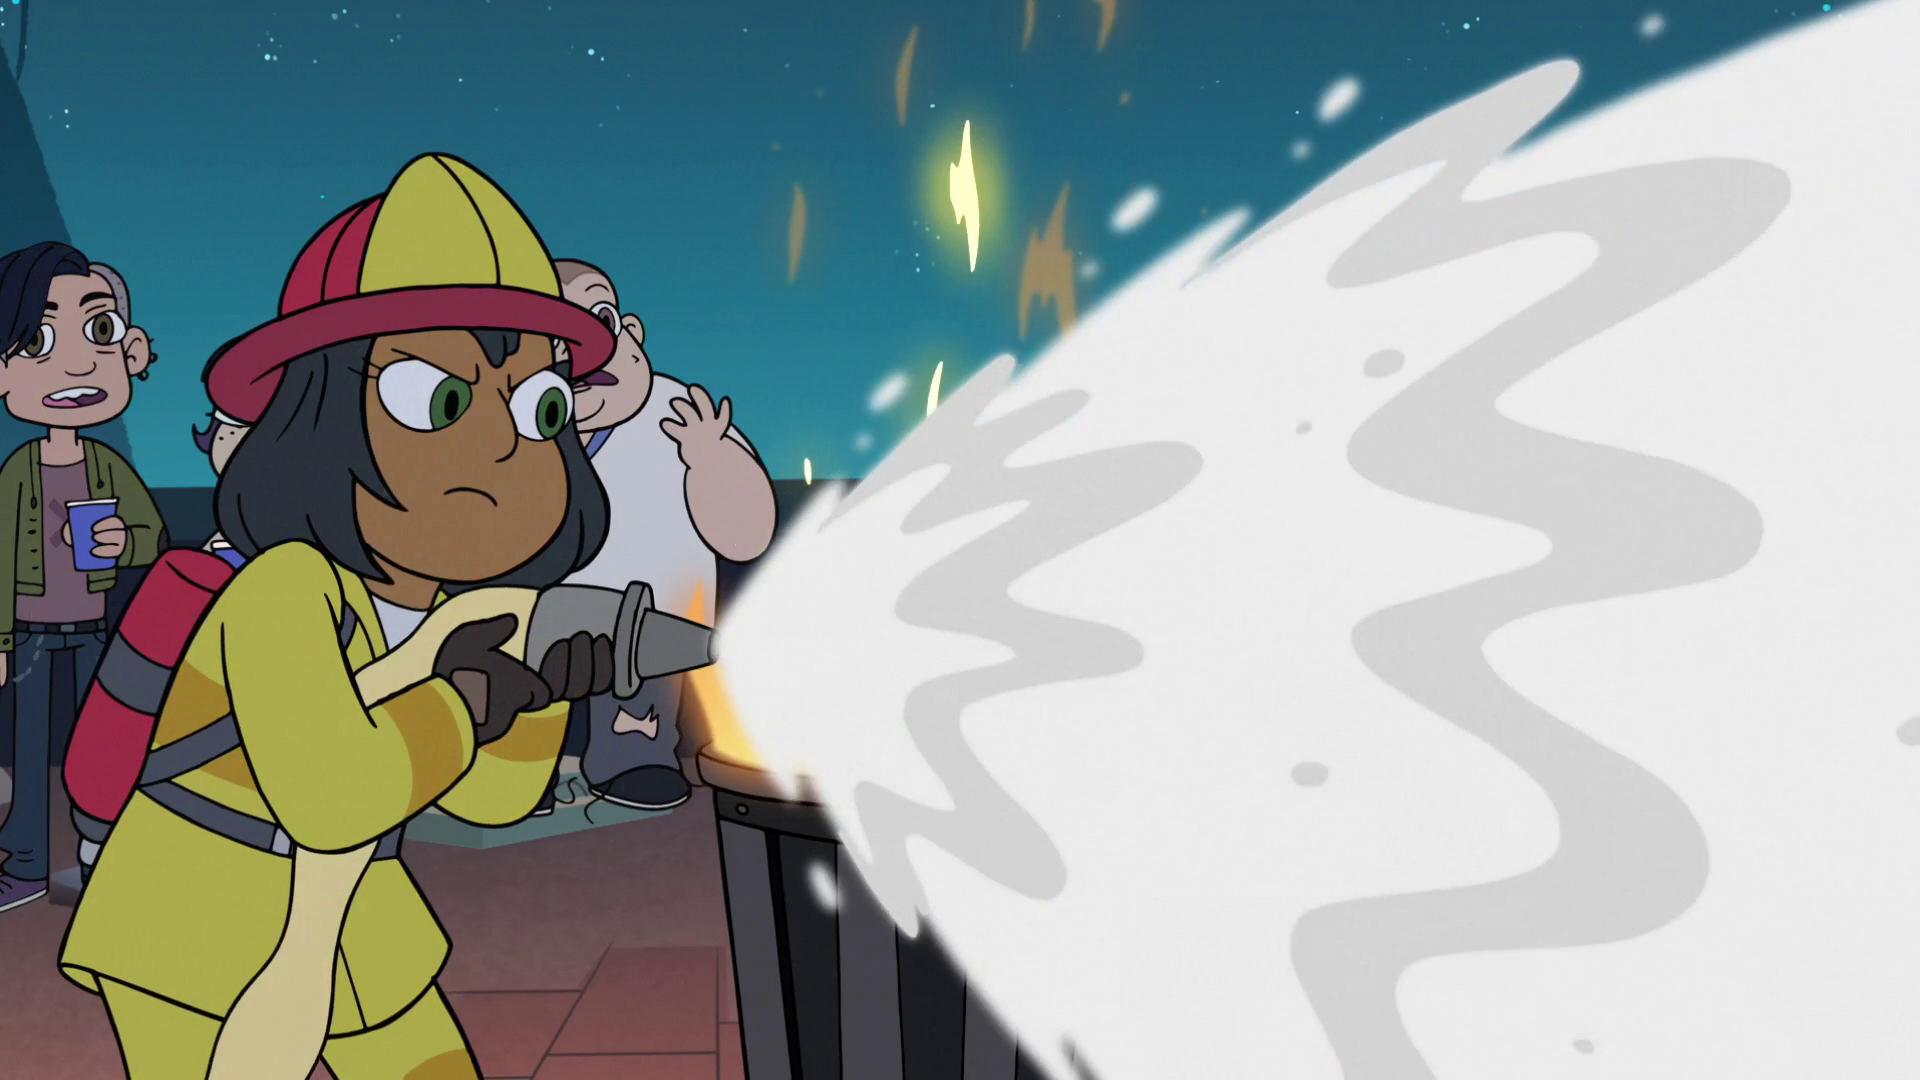 image s2e41 firefighter woman puts out the fire png star vs